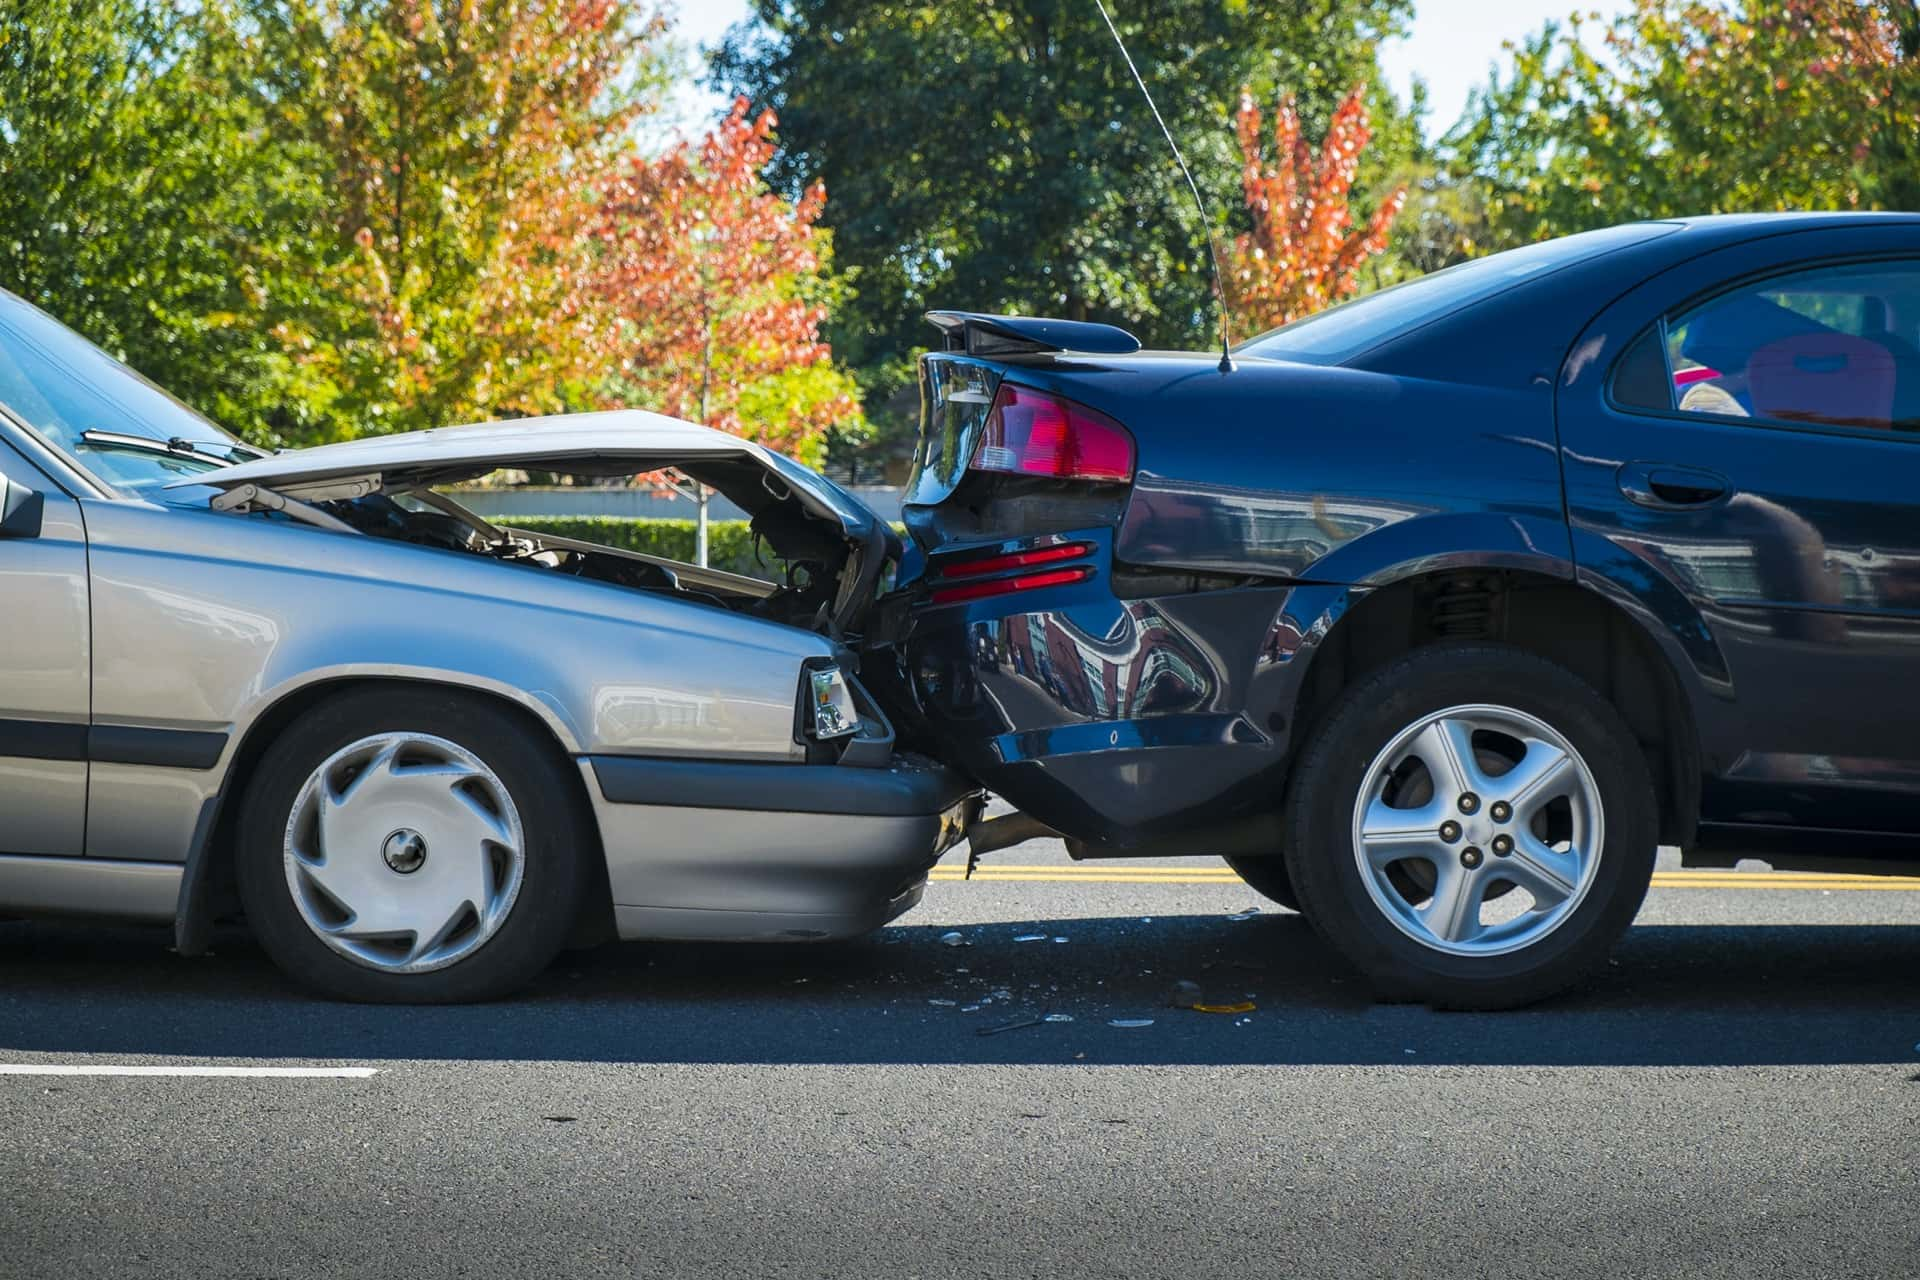 How to Prepare Yourself for a Possible Car Accident